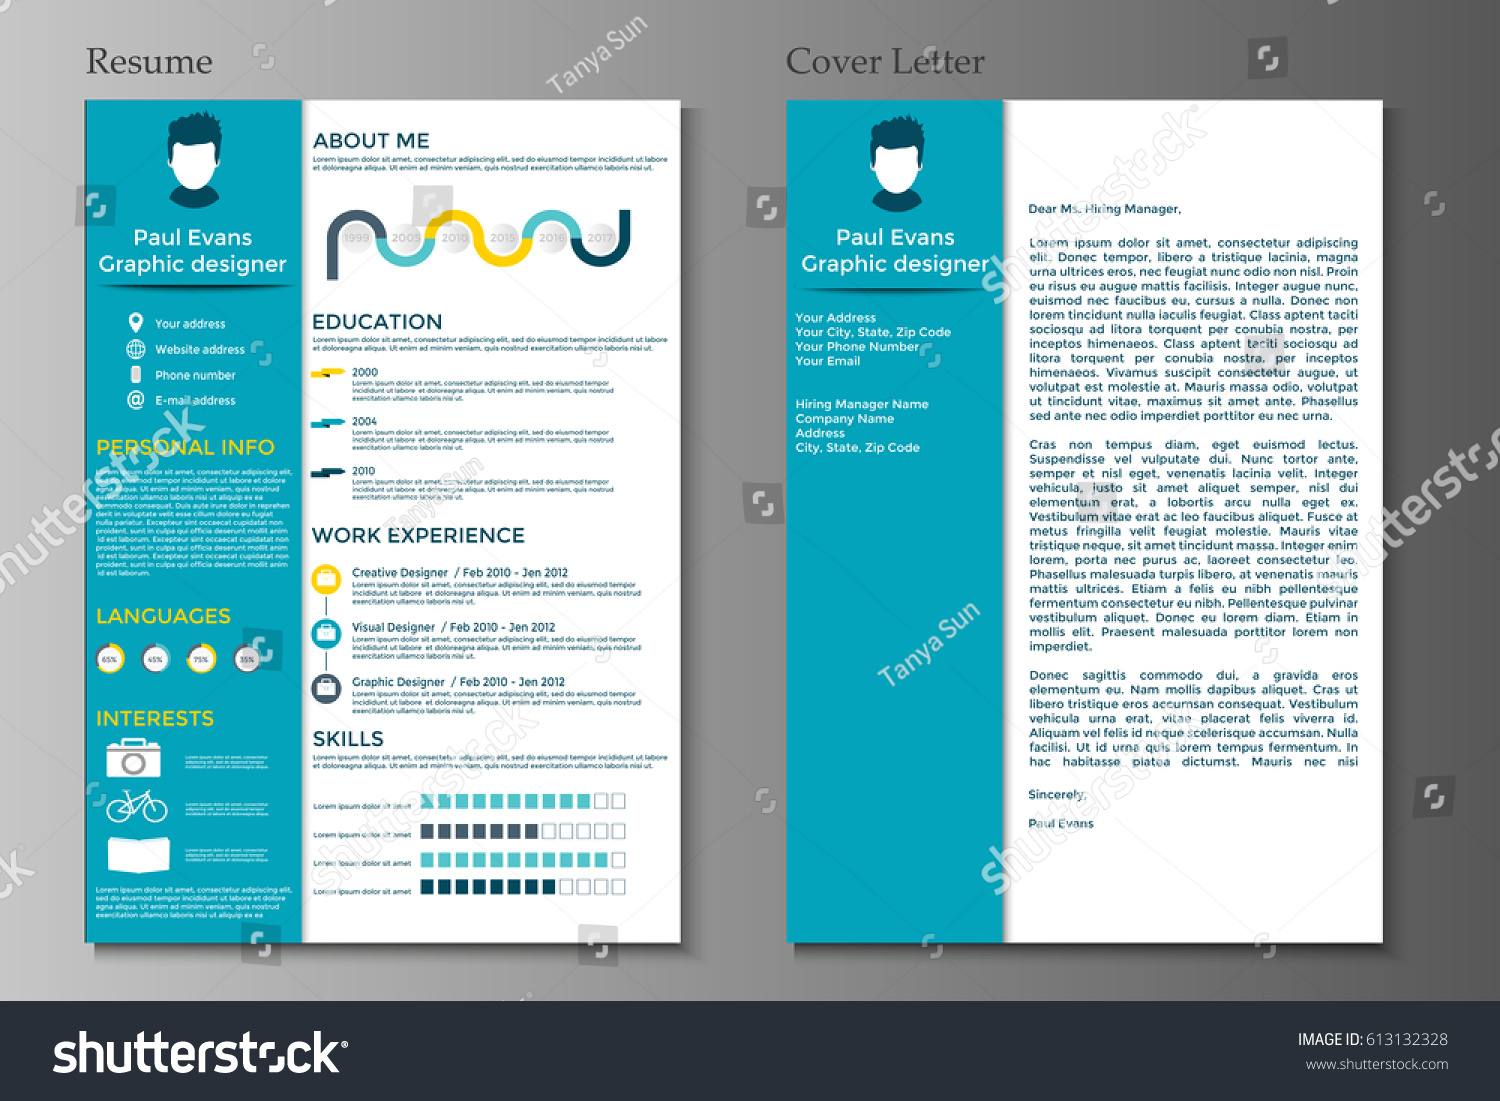 Resume Cover Letter Collection Modern Cv Stock Vector 613132328